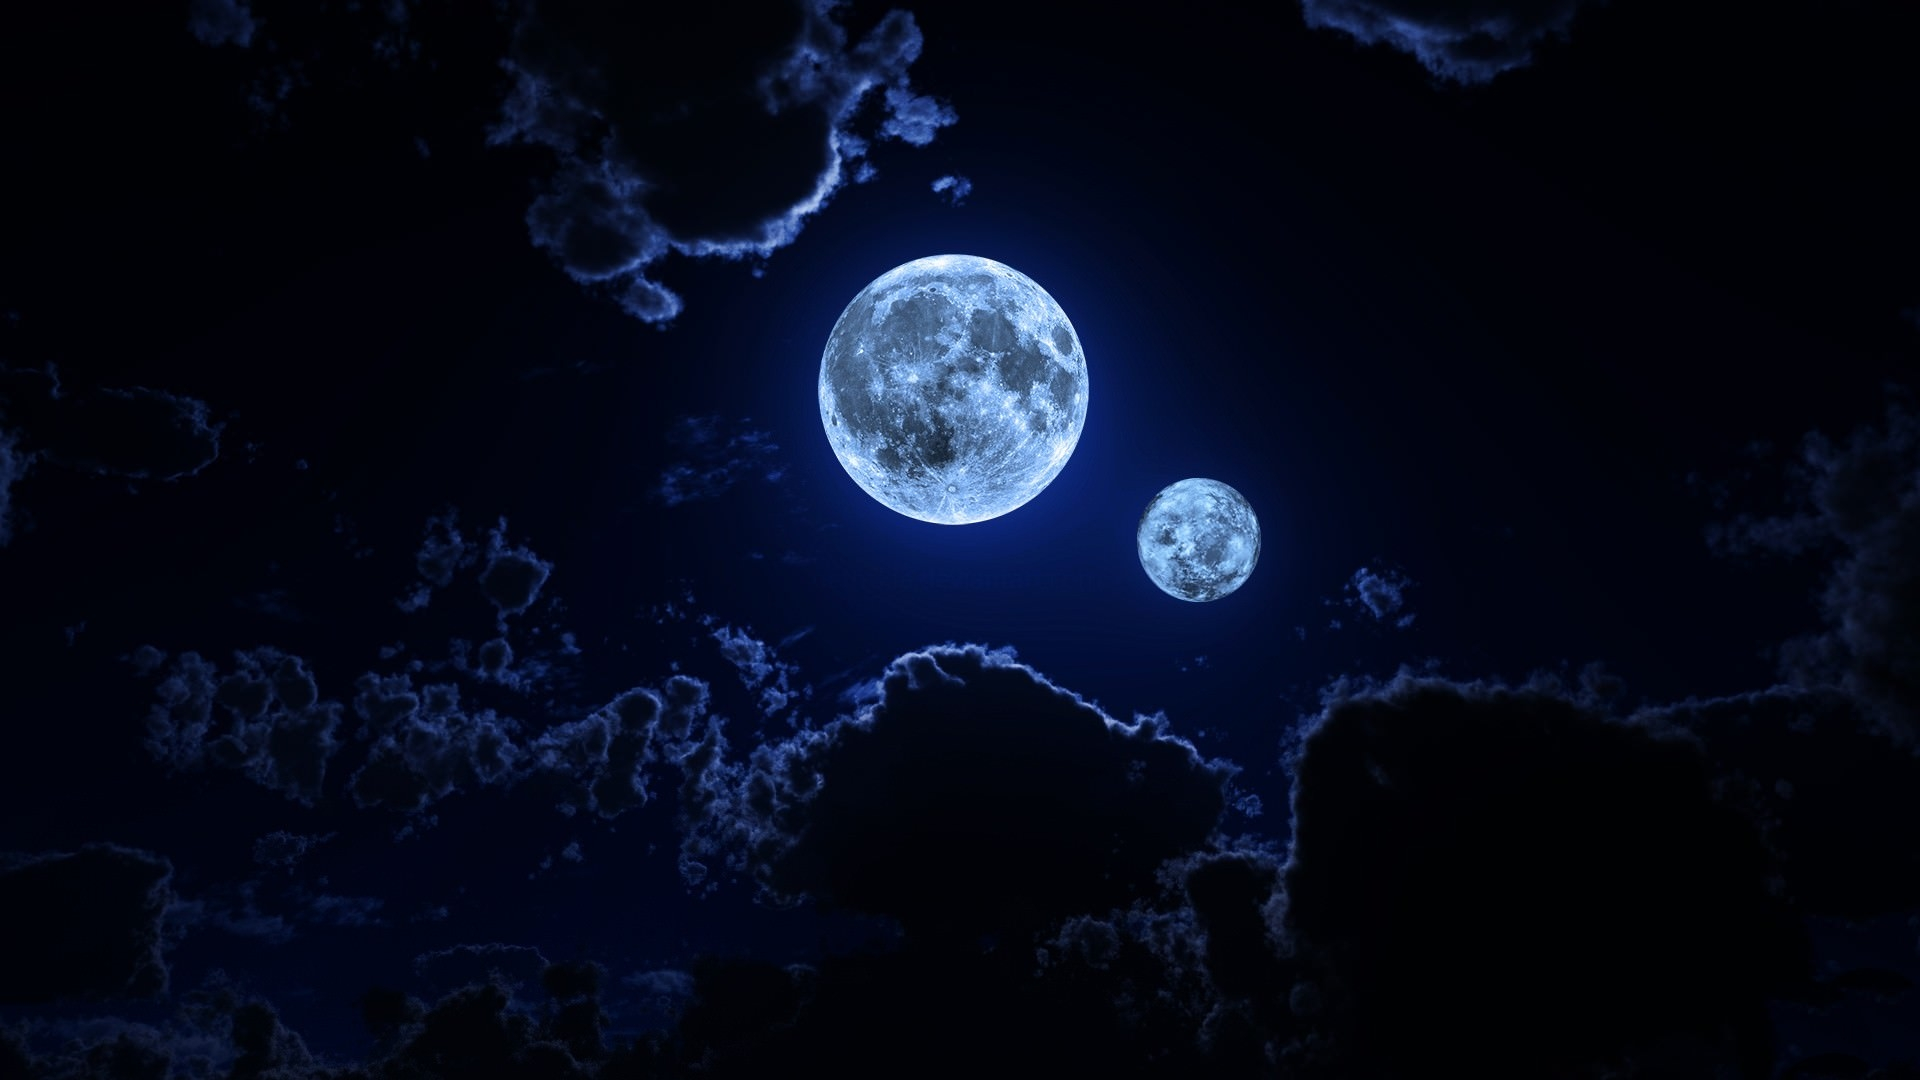 20 best moon desktop wallpapers freecreatives